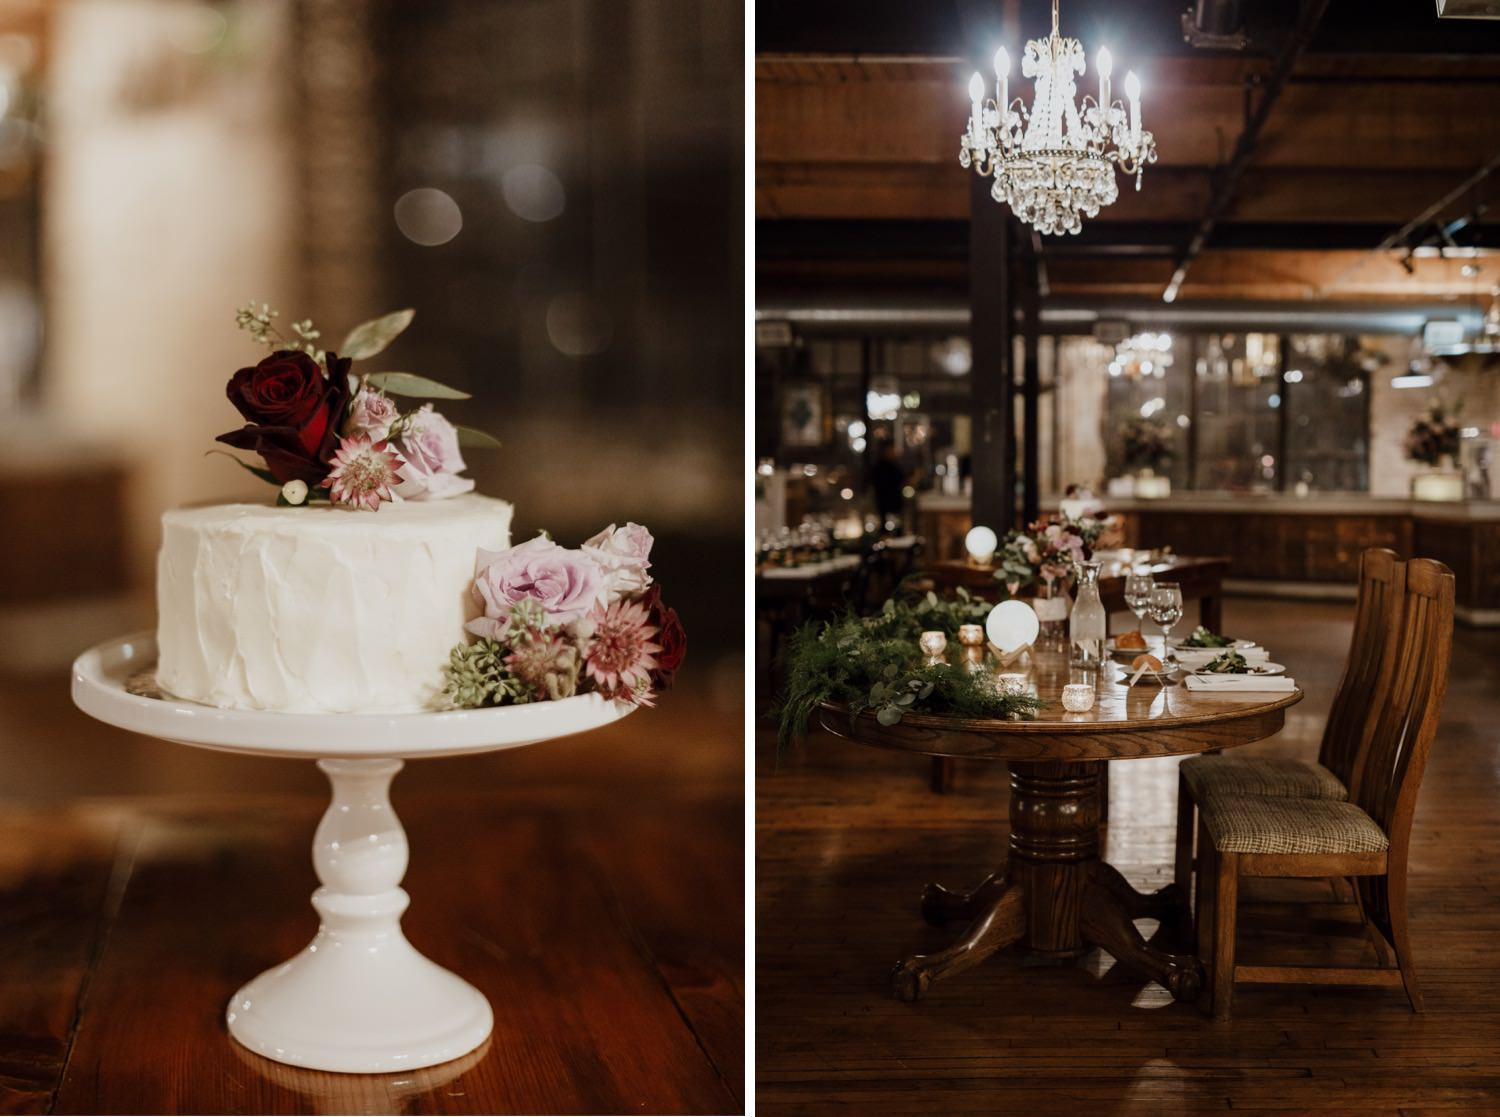 Photos of Cage and table decorations at the wedding in Salvage One